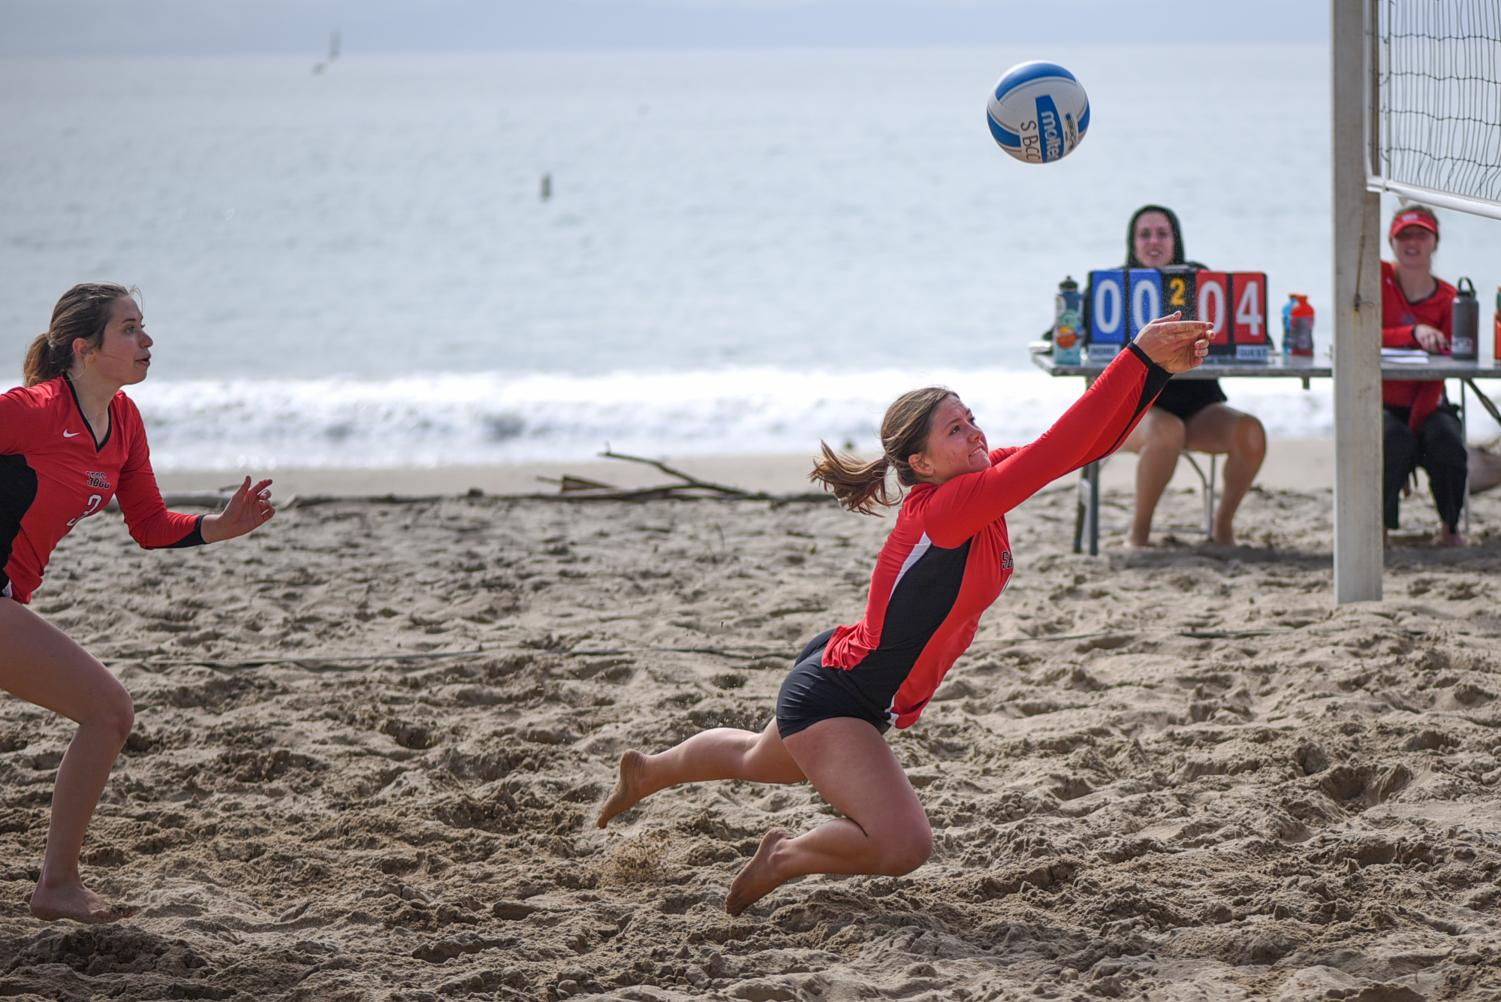 Maddie Meyer (No. 4) dives to save the ball with Michelle Orgel (No. 3) following close behind on Friday March 1 at East Beach in Santa Barbara.